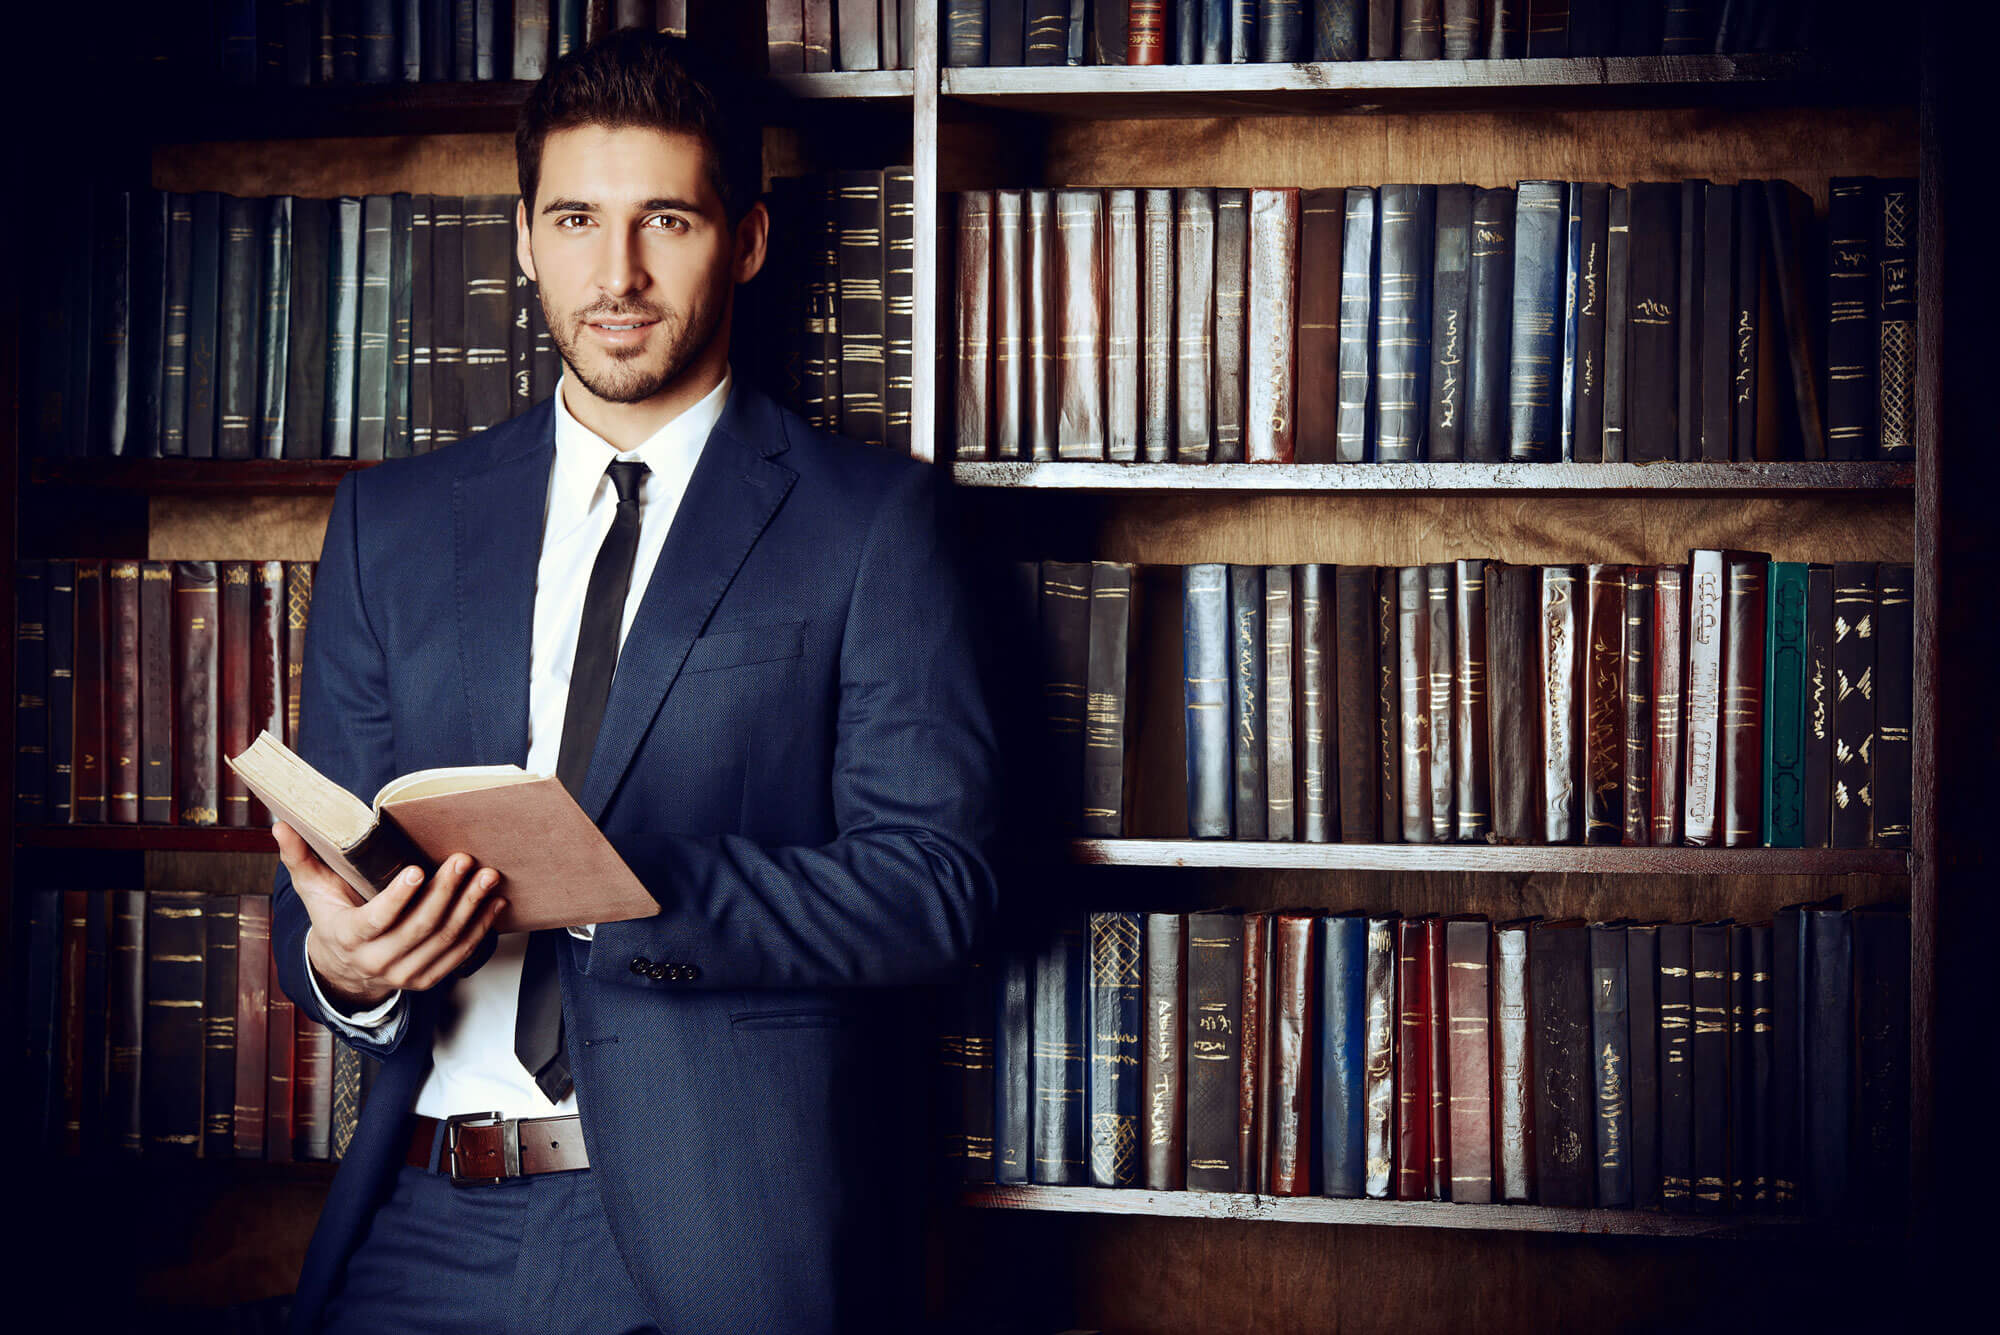 The Best Self Help Books for Men – Learn to Build a Better You